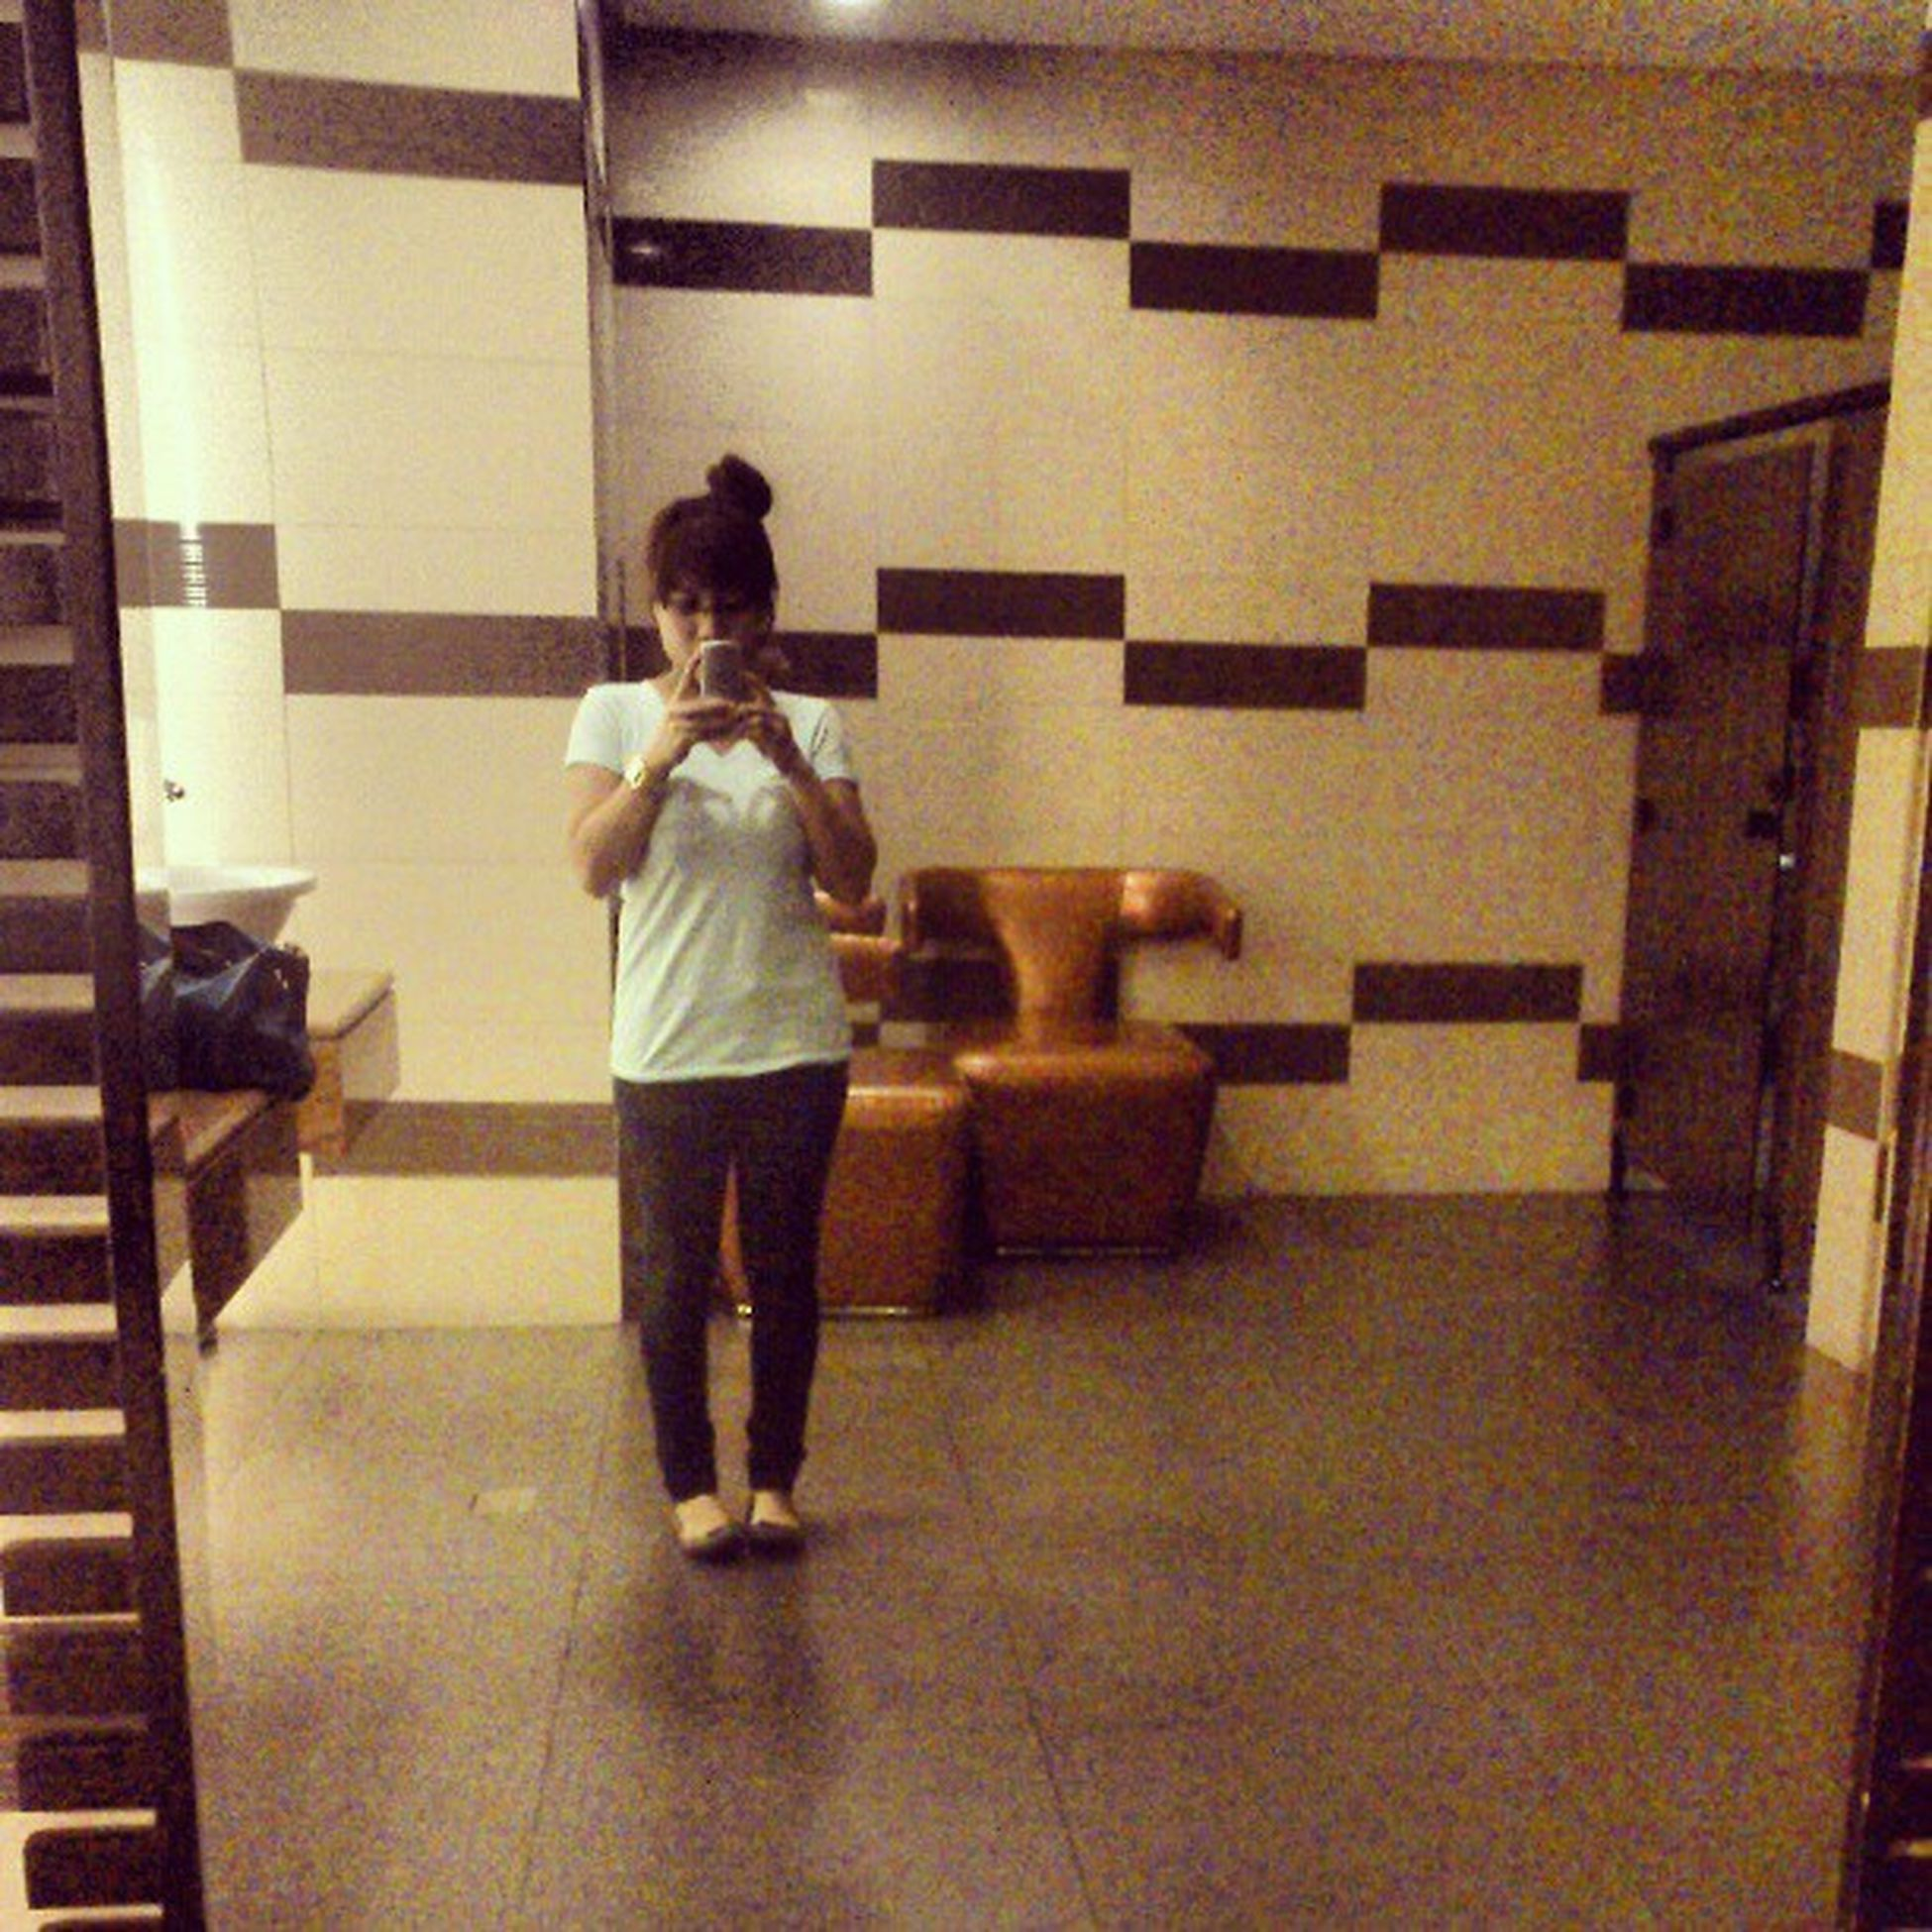 Can you guess where exactly am I? It's a combination of living room and comfort room. :) Saturdate FastAndFurious6 Betterlatethennever Selfiemomukhamo resortsworld walangbasaganngtrip